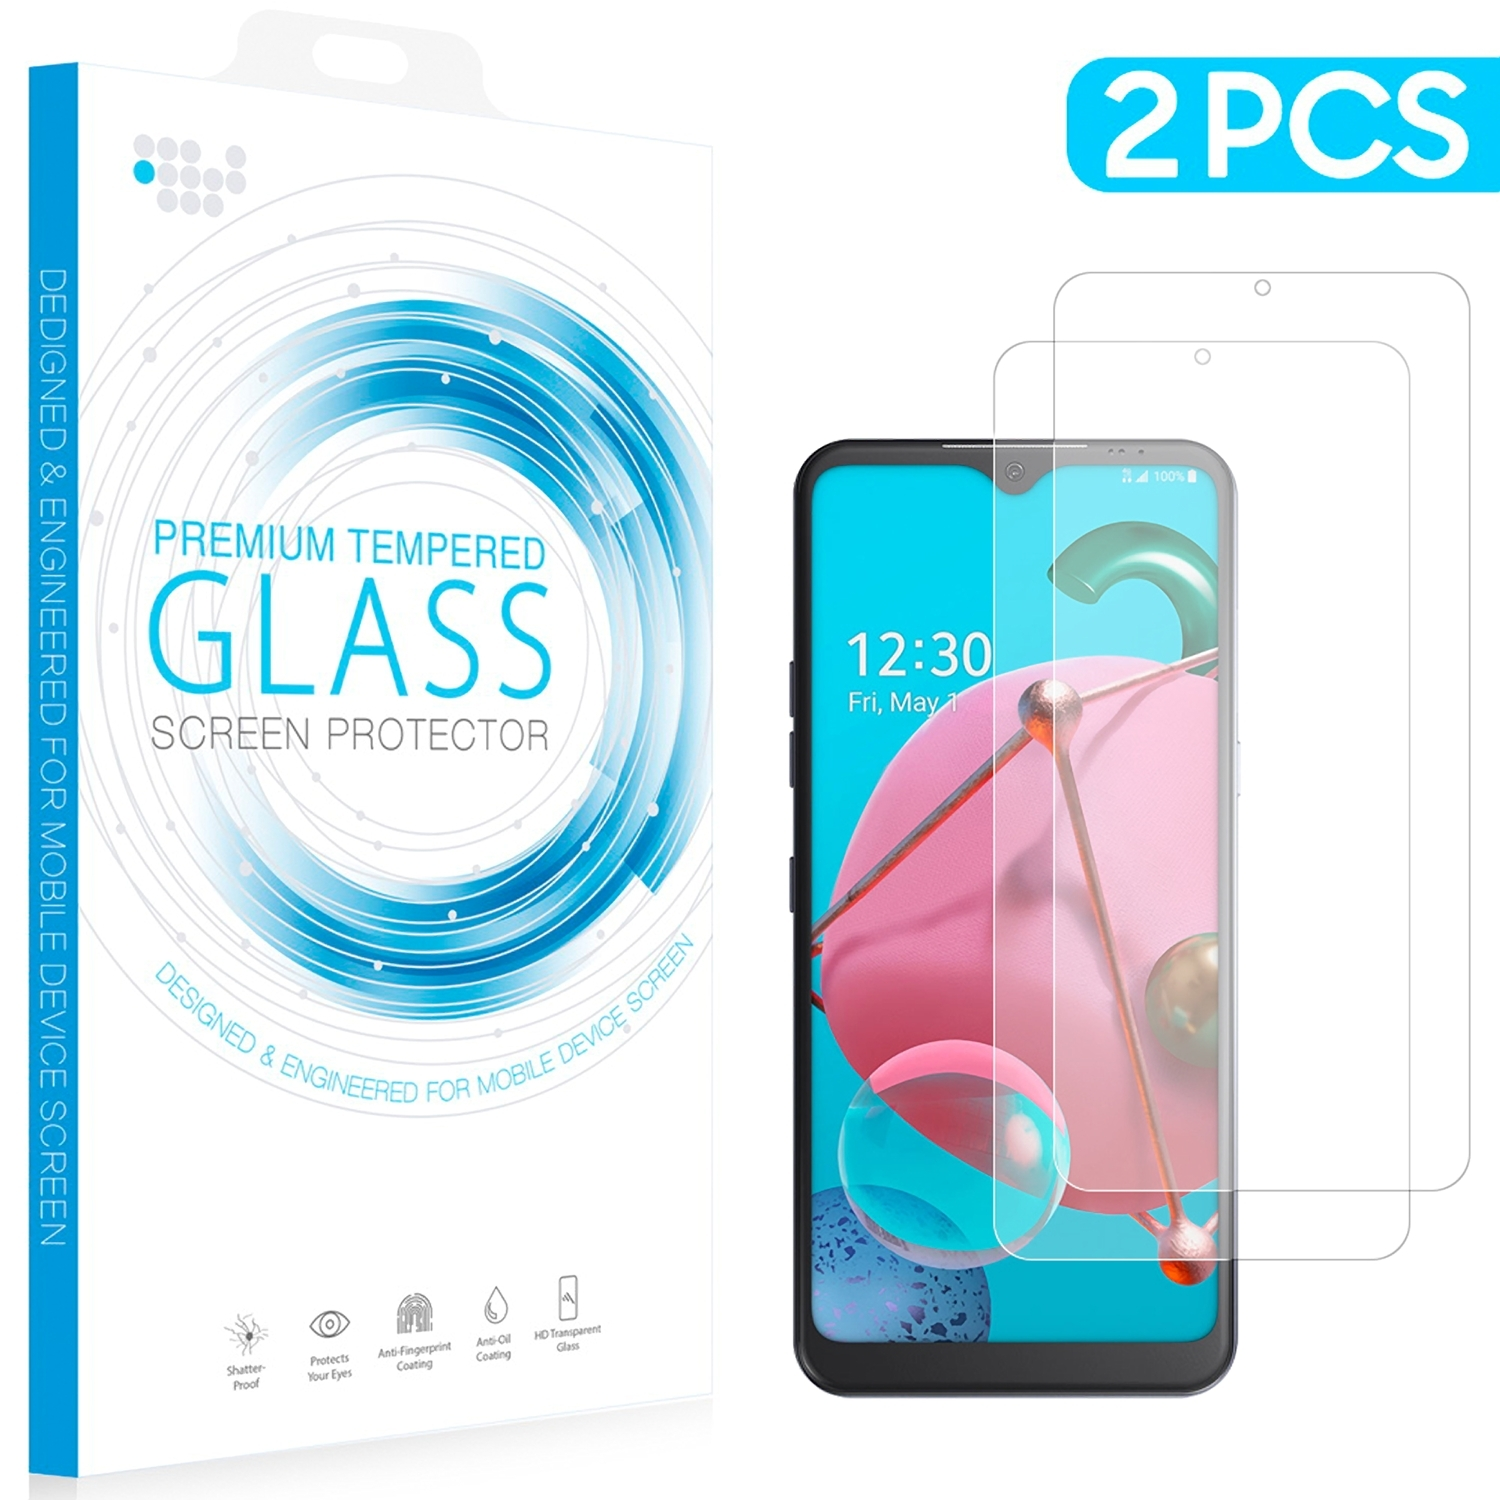 Lg K51 2 Pack Tempered Glass Screen Protector 0.26Mm Arcing/Clear/One size - $9.30